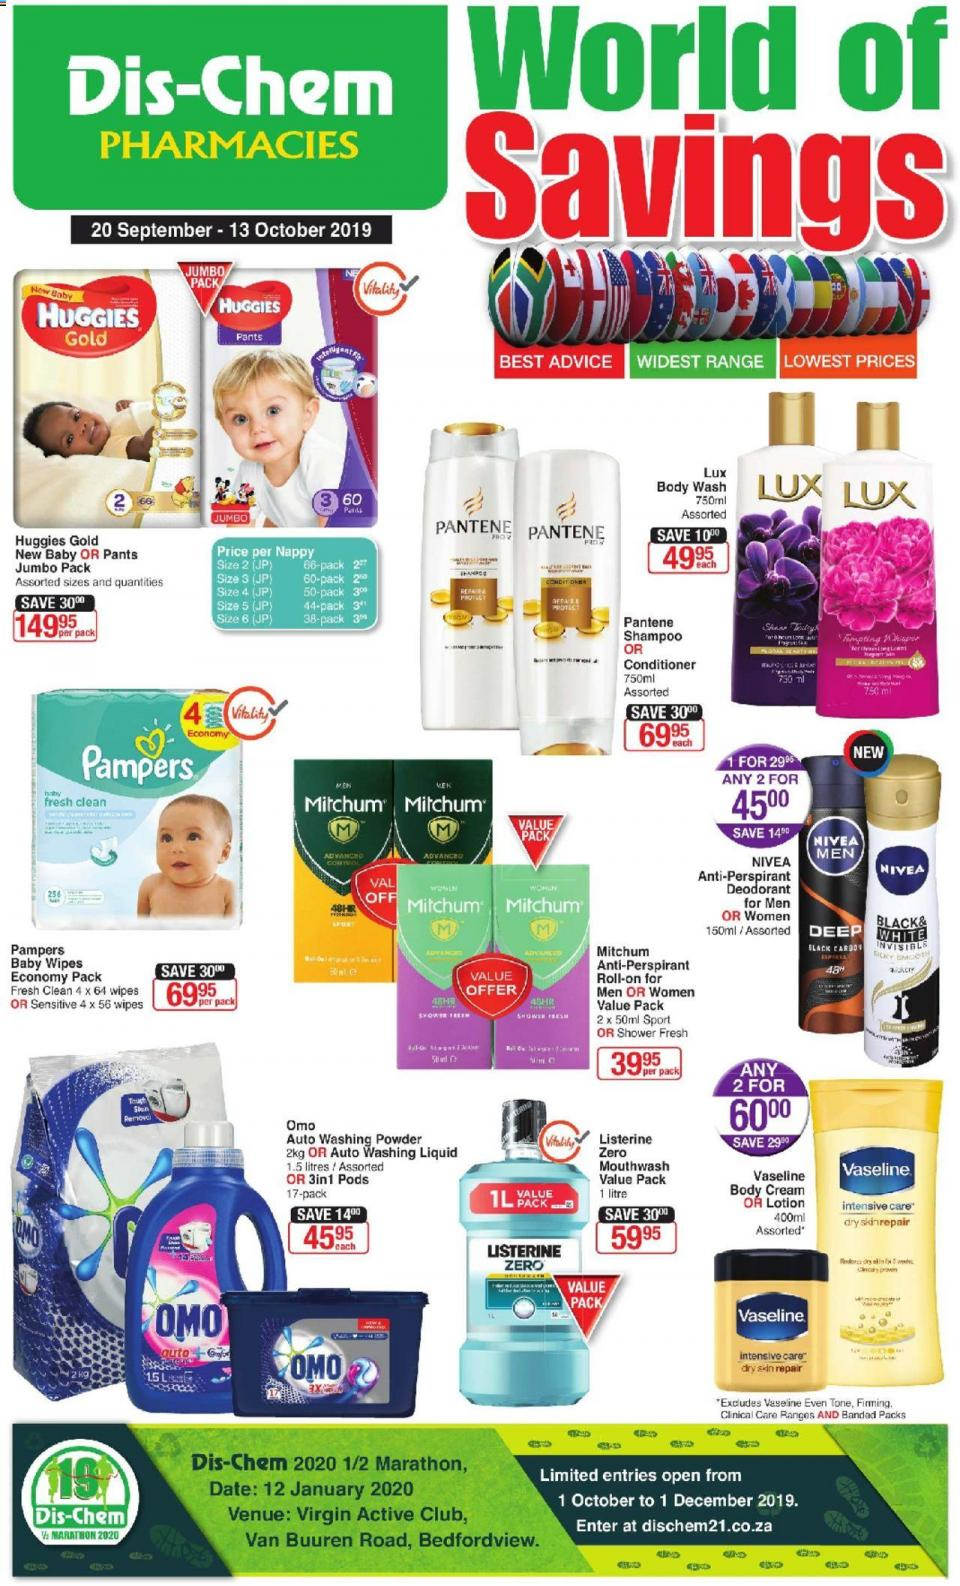 dischem specials world of savings 20 september 2019